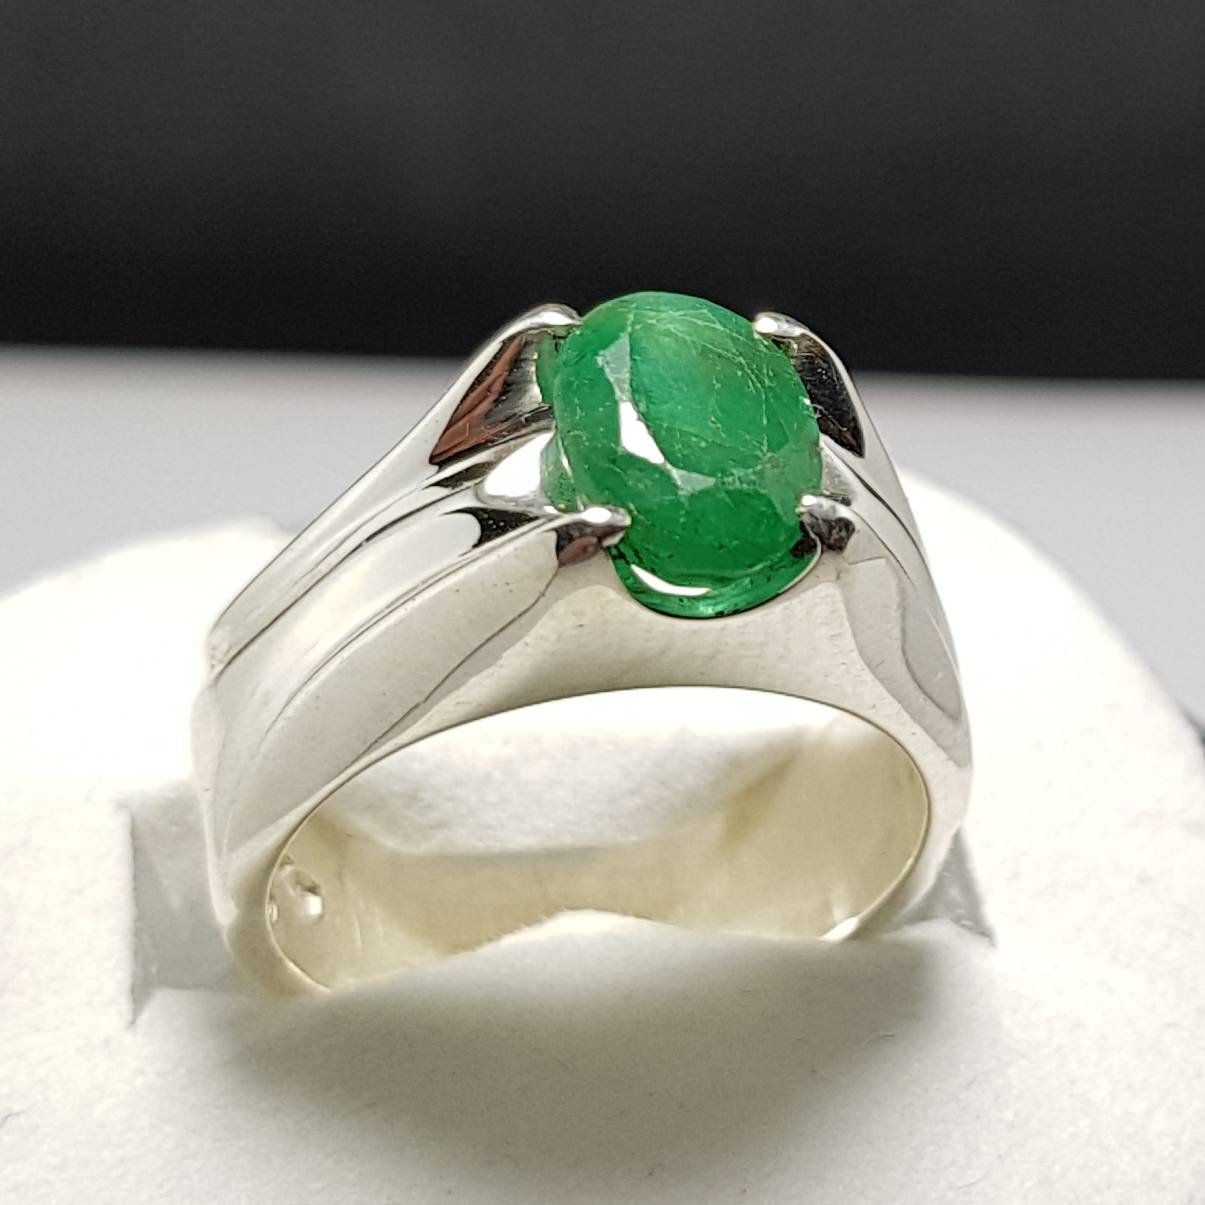 Original Panna Stone Ring In Sterling Silver White Gold